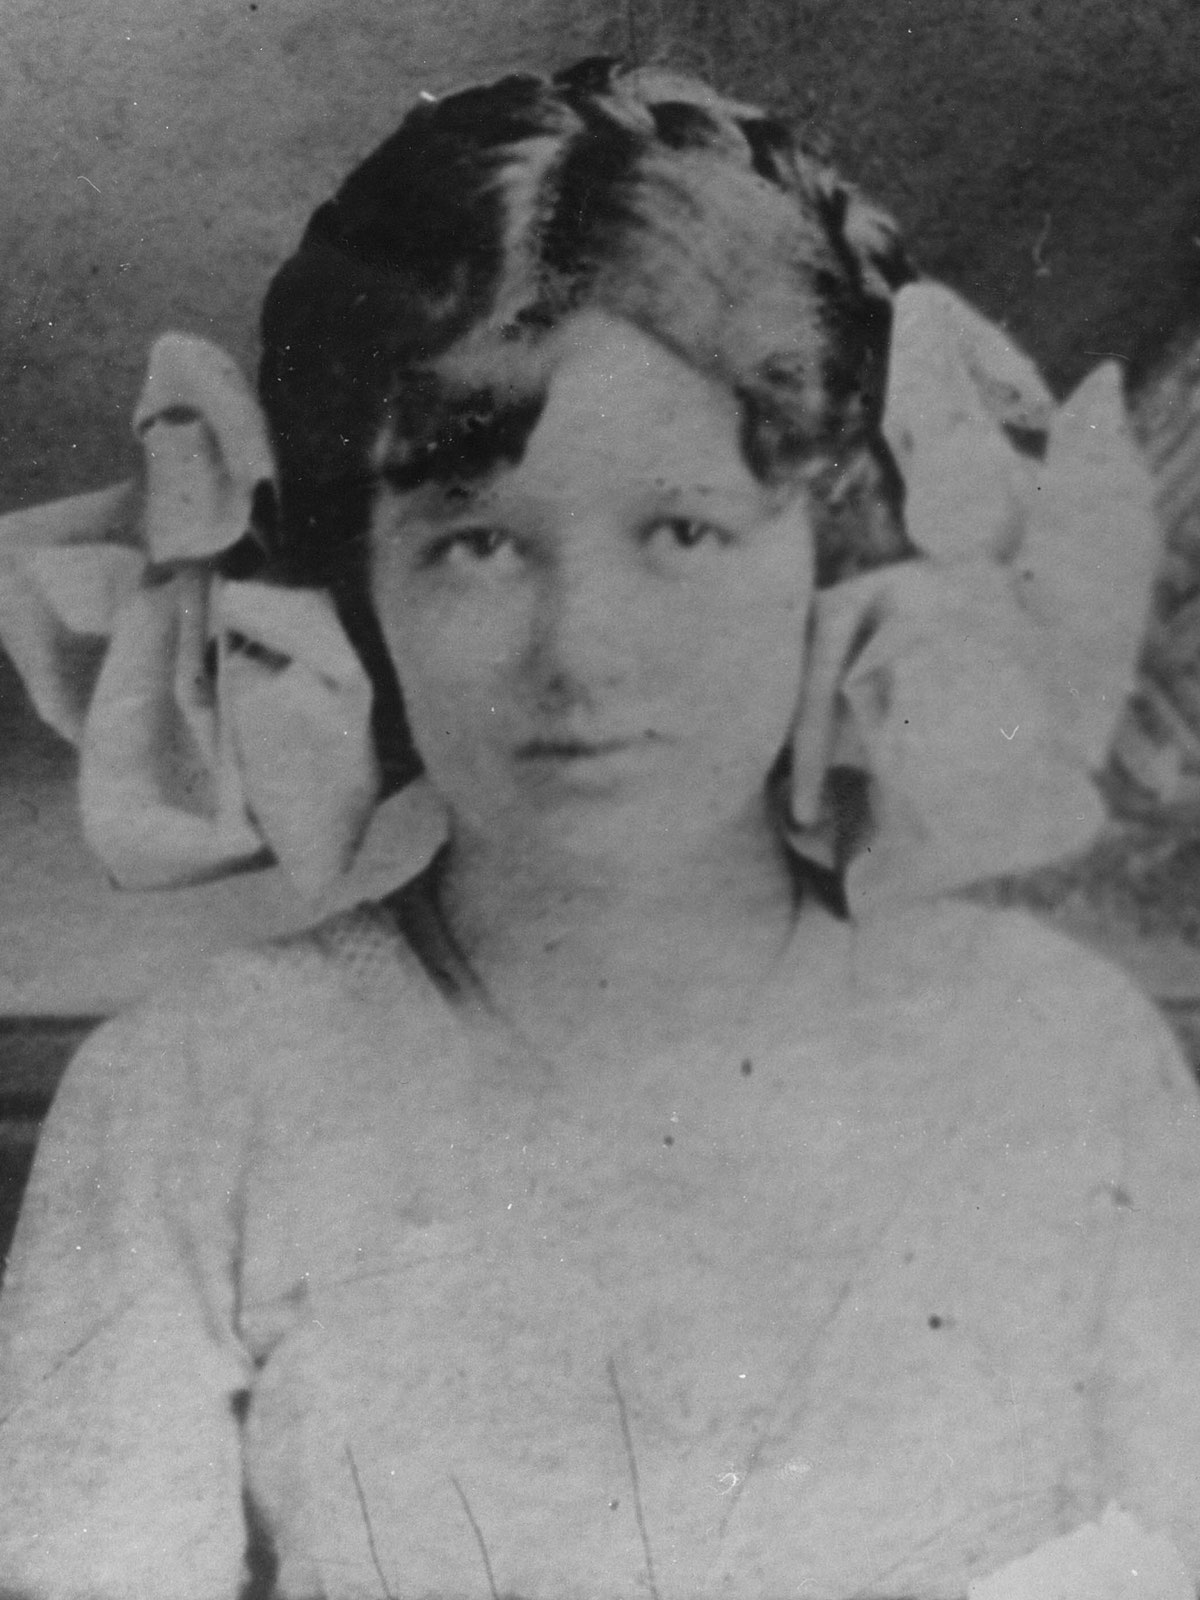 13-year -old Mary Phagan as pictured in the press